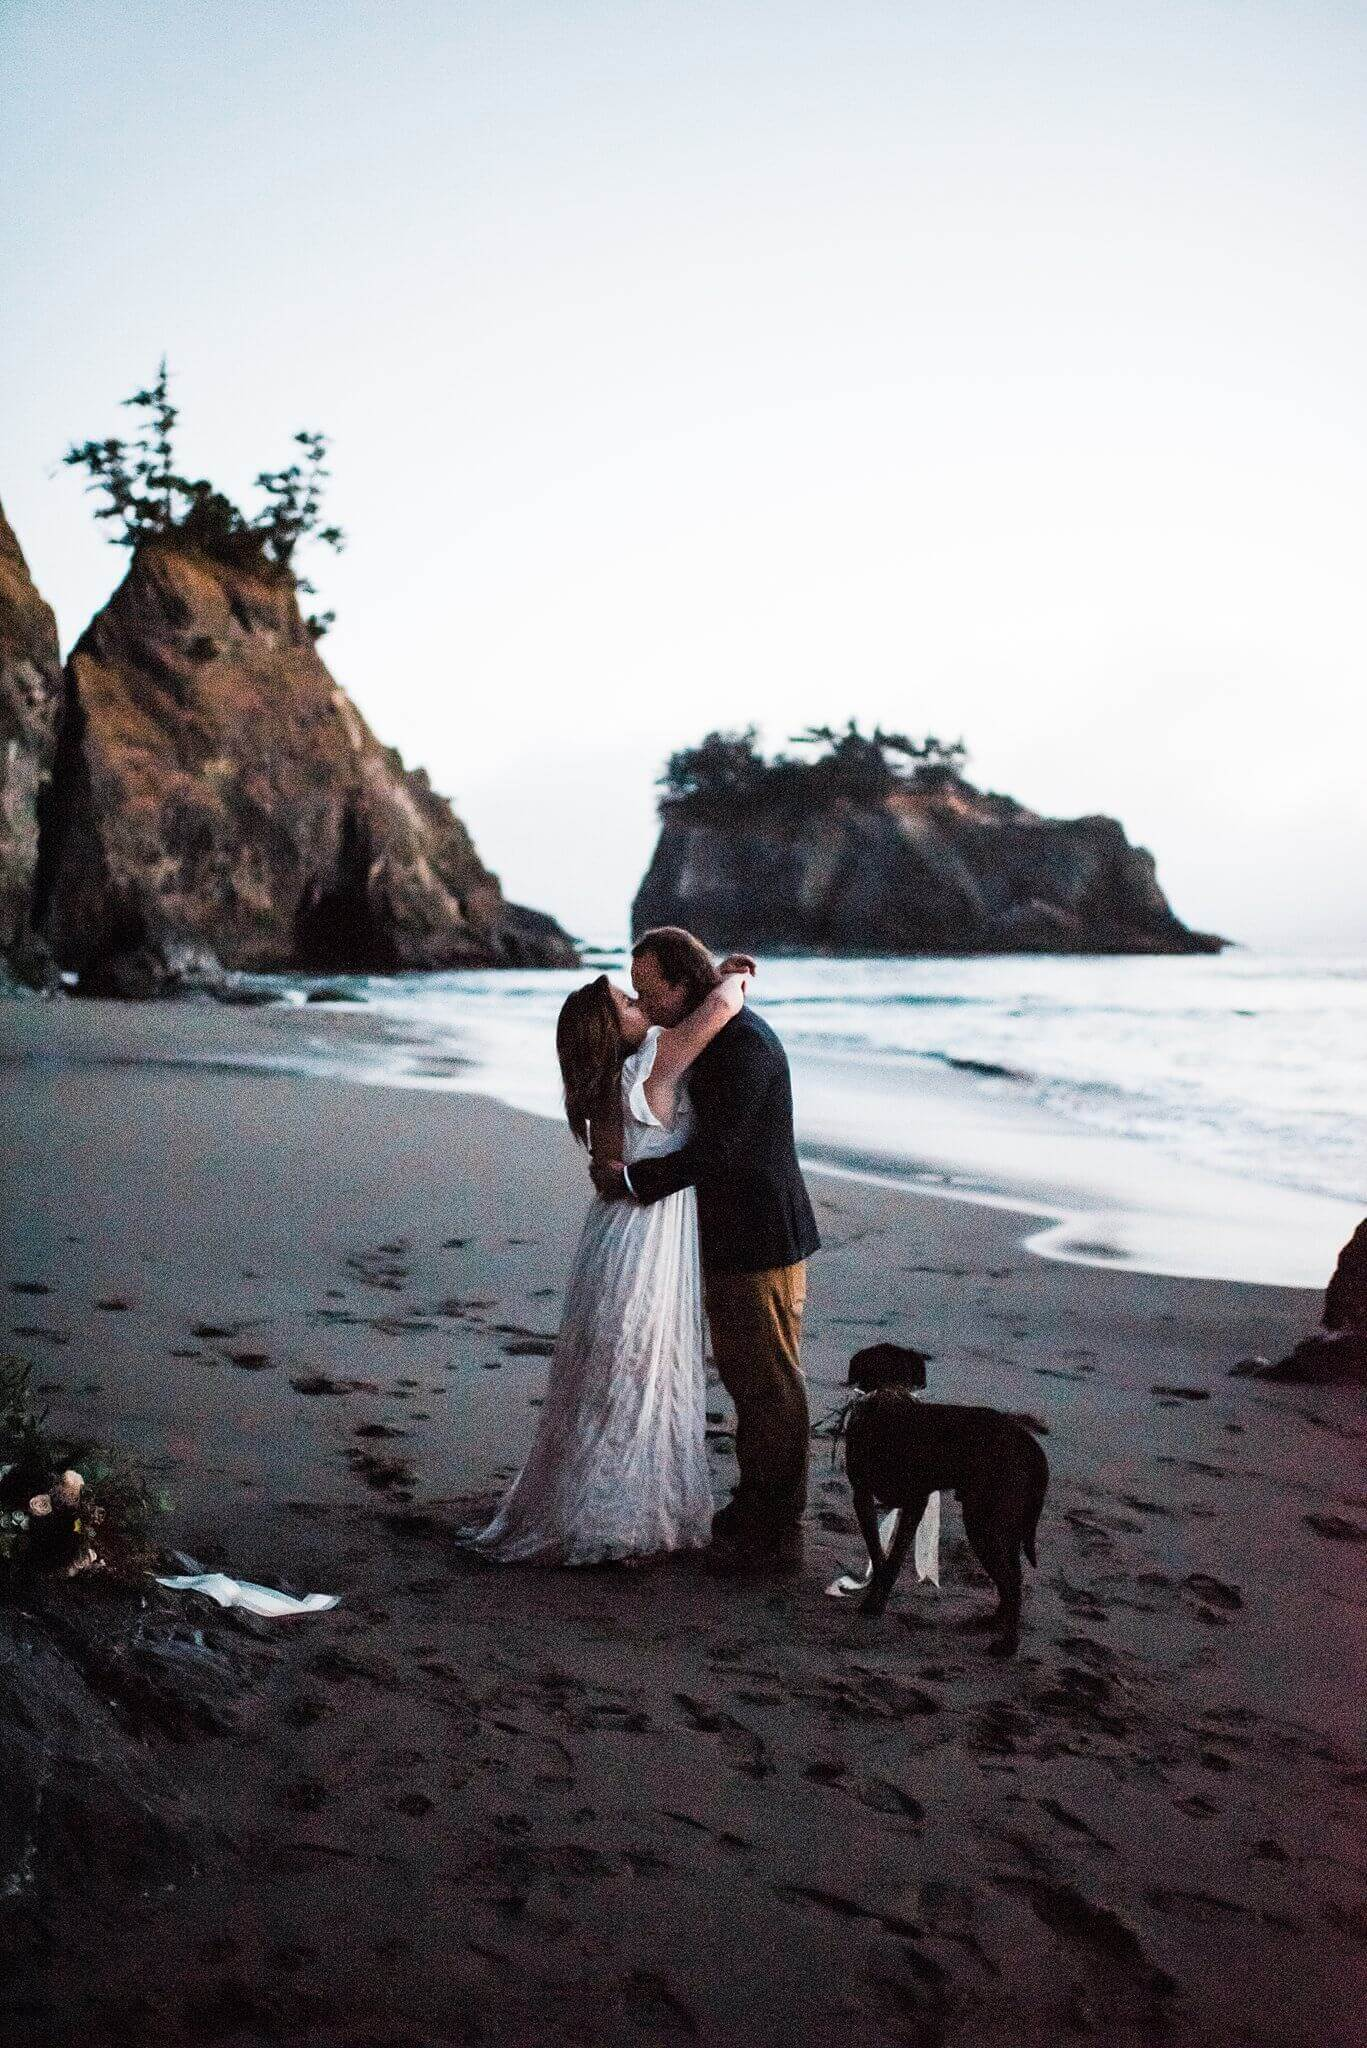 S Photography,adventure elopements,beach wedding,boho wedding,brookings,elopement,elopement photographer,indie wedding,intimate wedding,oregon,oregon coast,pacific northwest,samuel h. boardman,